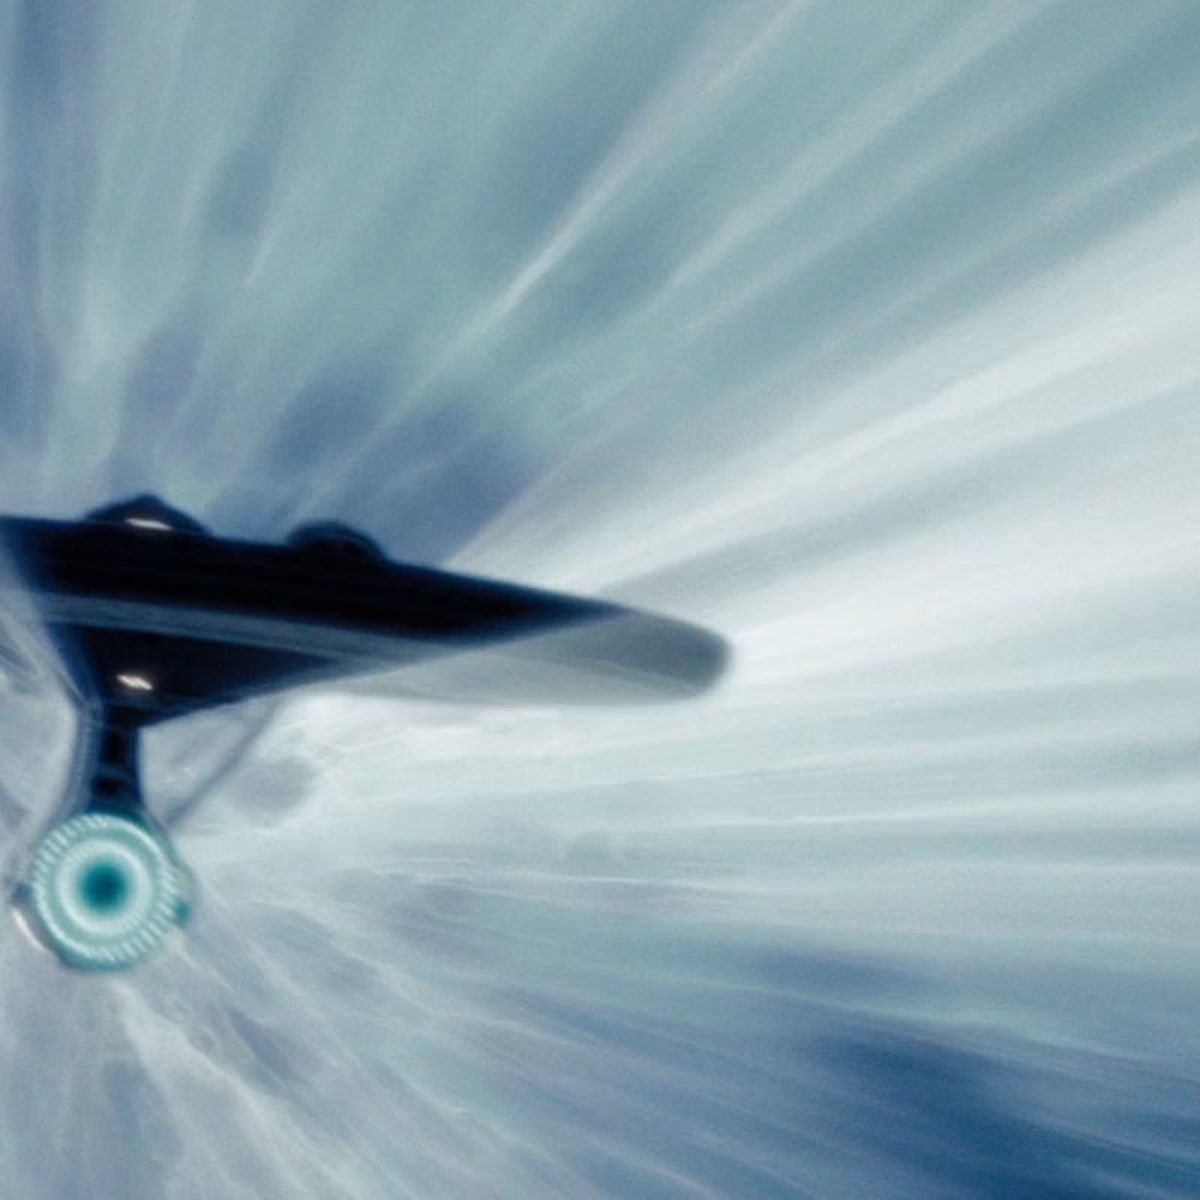 USS_Enterprise_alternate_reality_at_warp.jpg